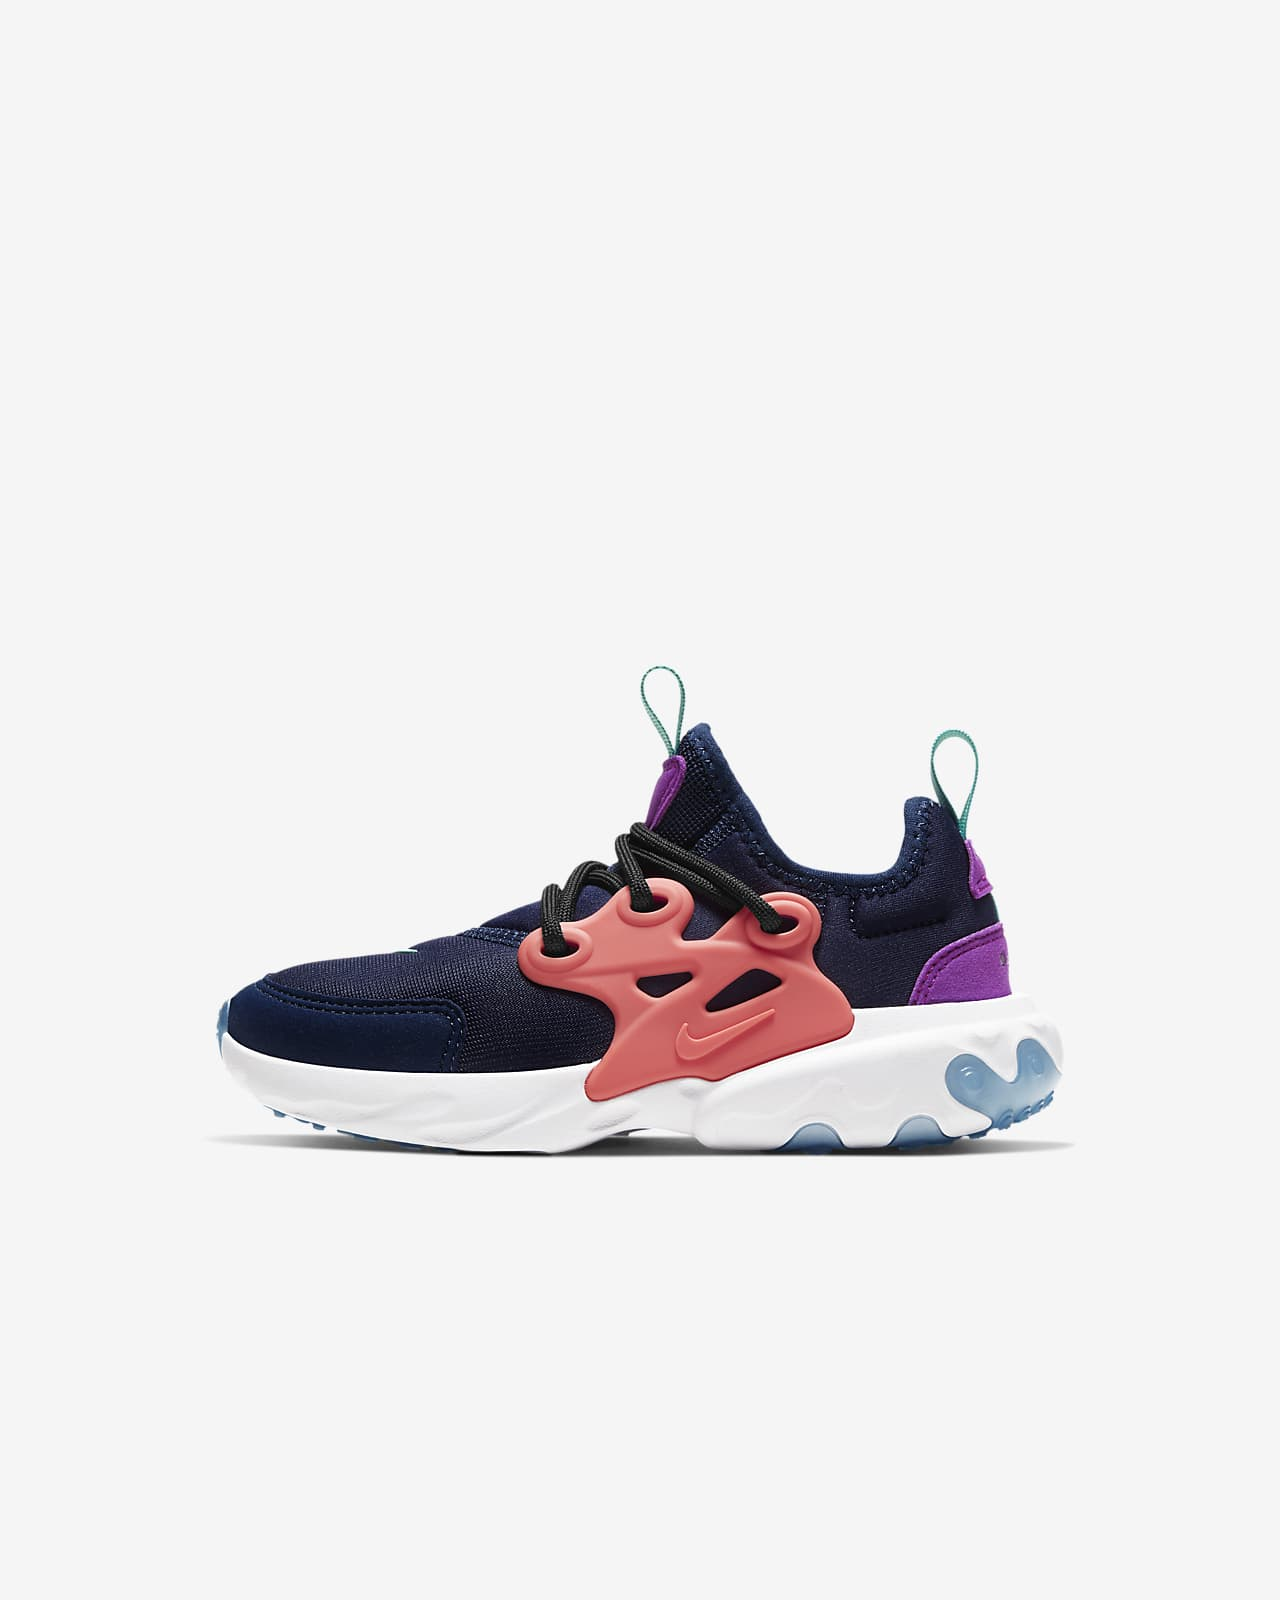 Nike RT Presto Little Kids' Shoe